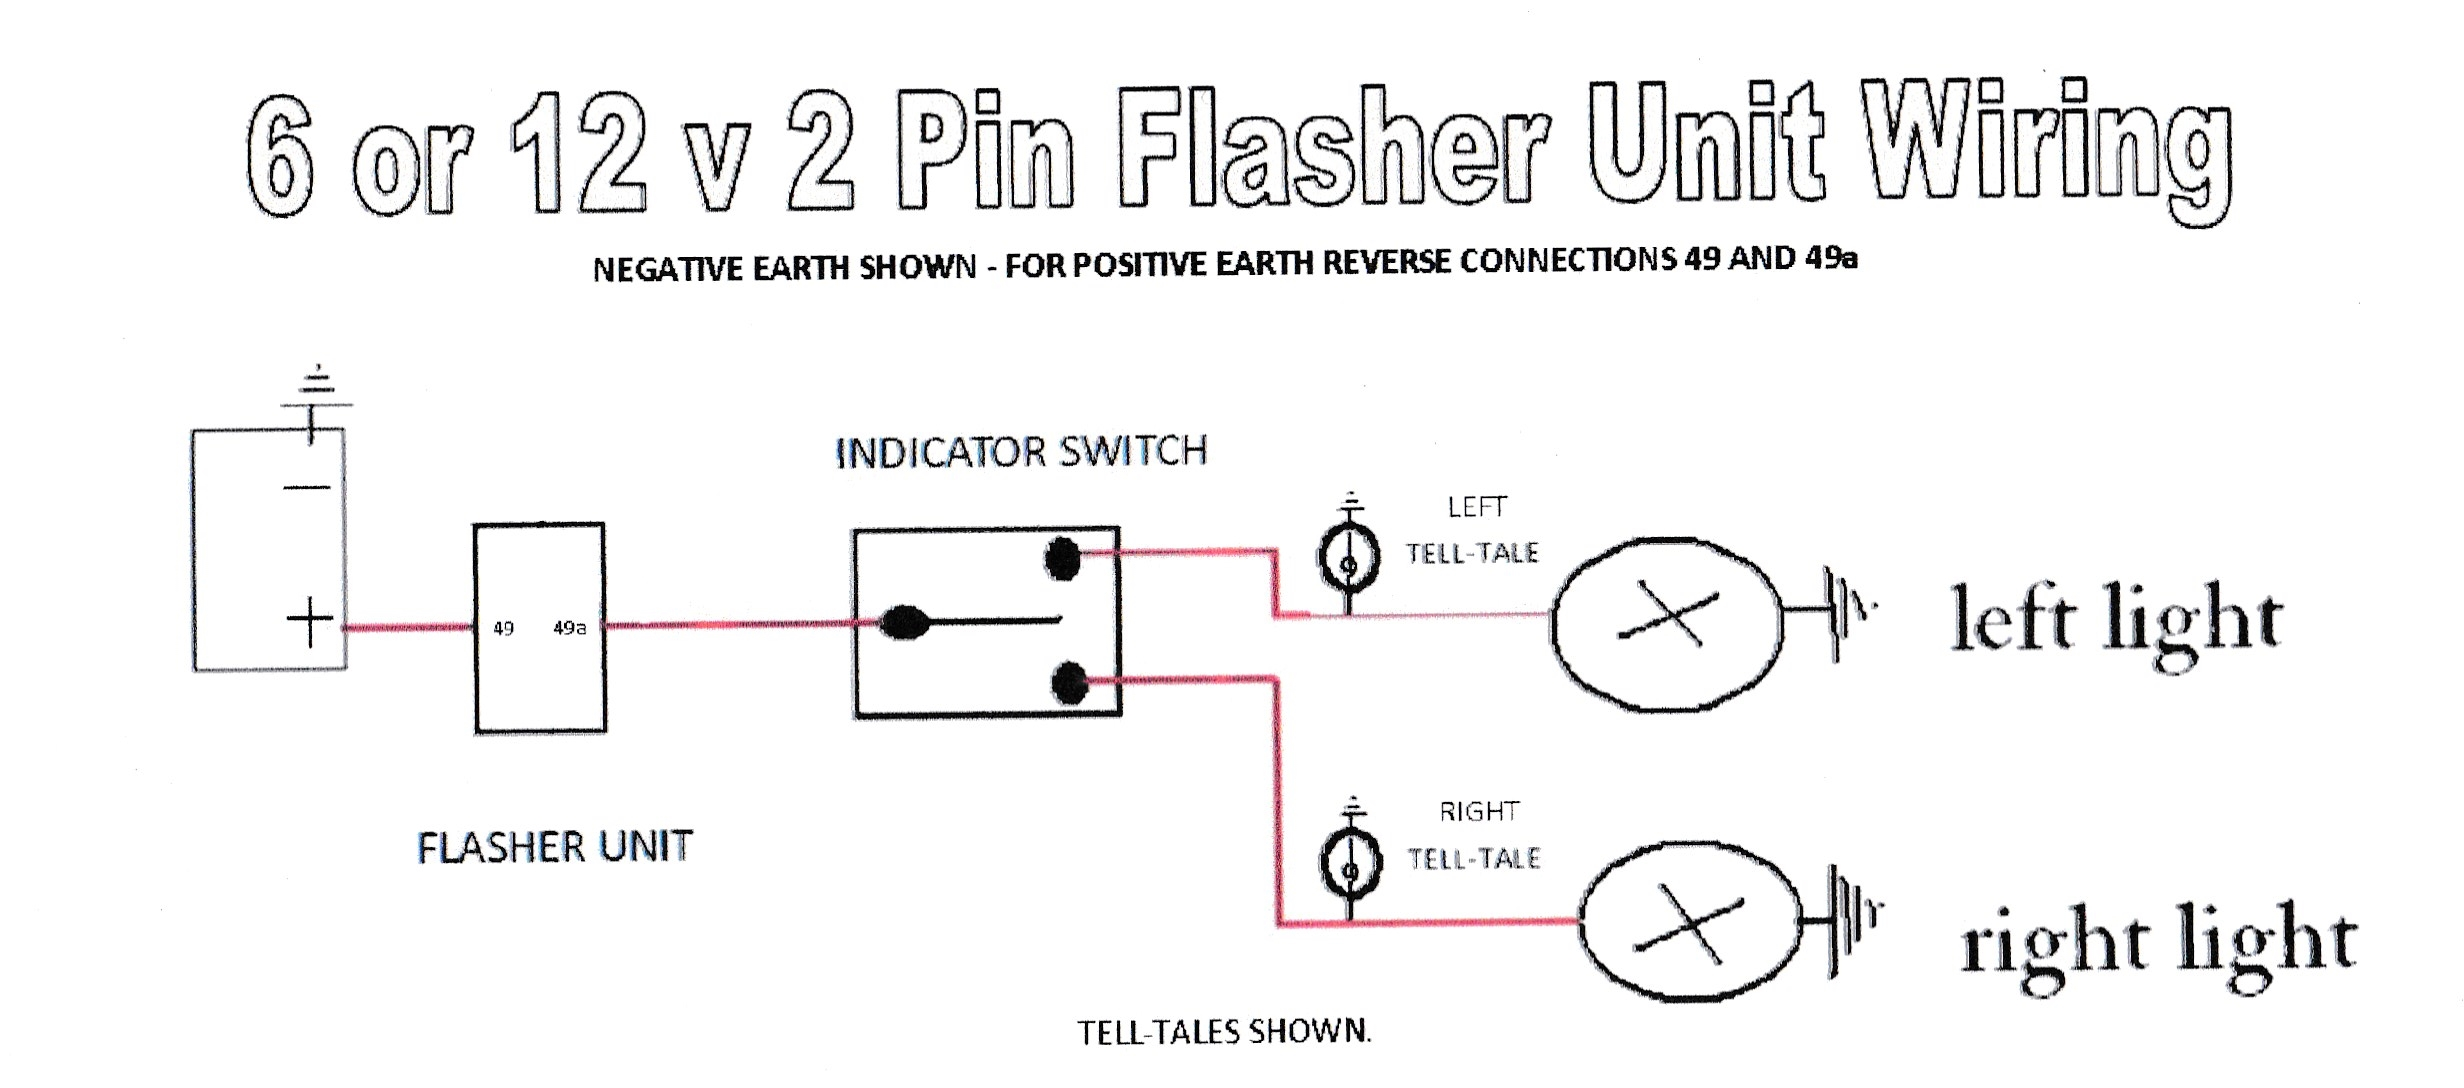 IMG_20150323_0001_NEW wiring diagrams to assist you with connecting up flasher unit wiring diagram at creativeand.co